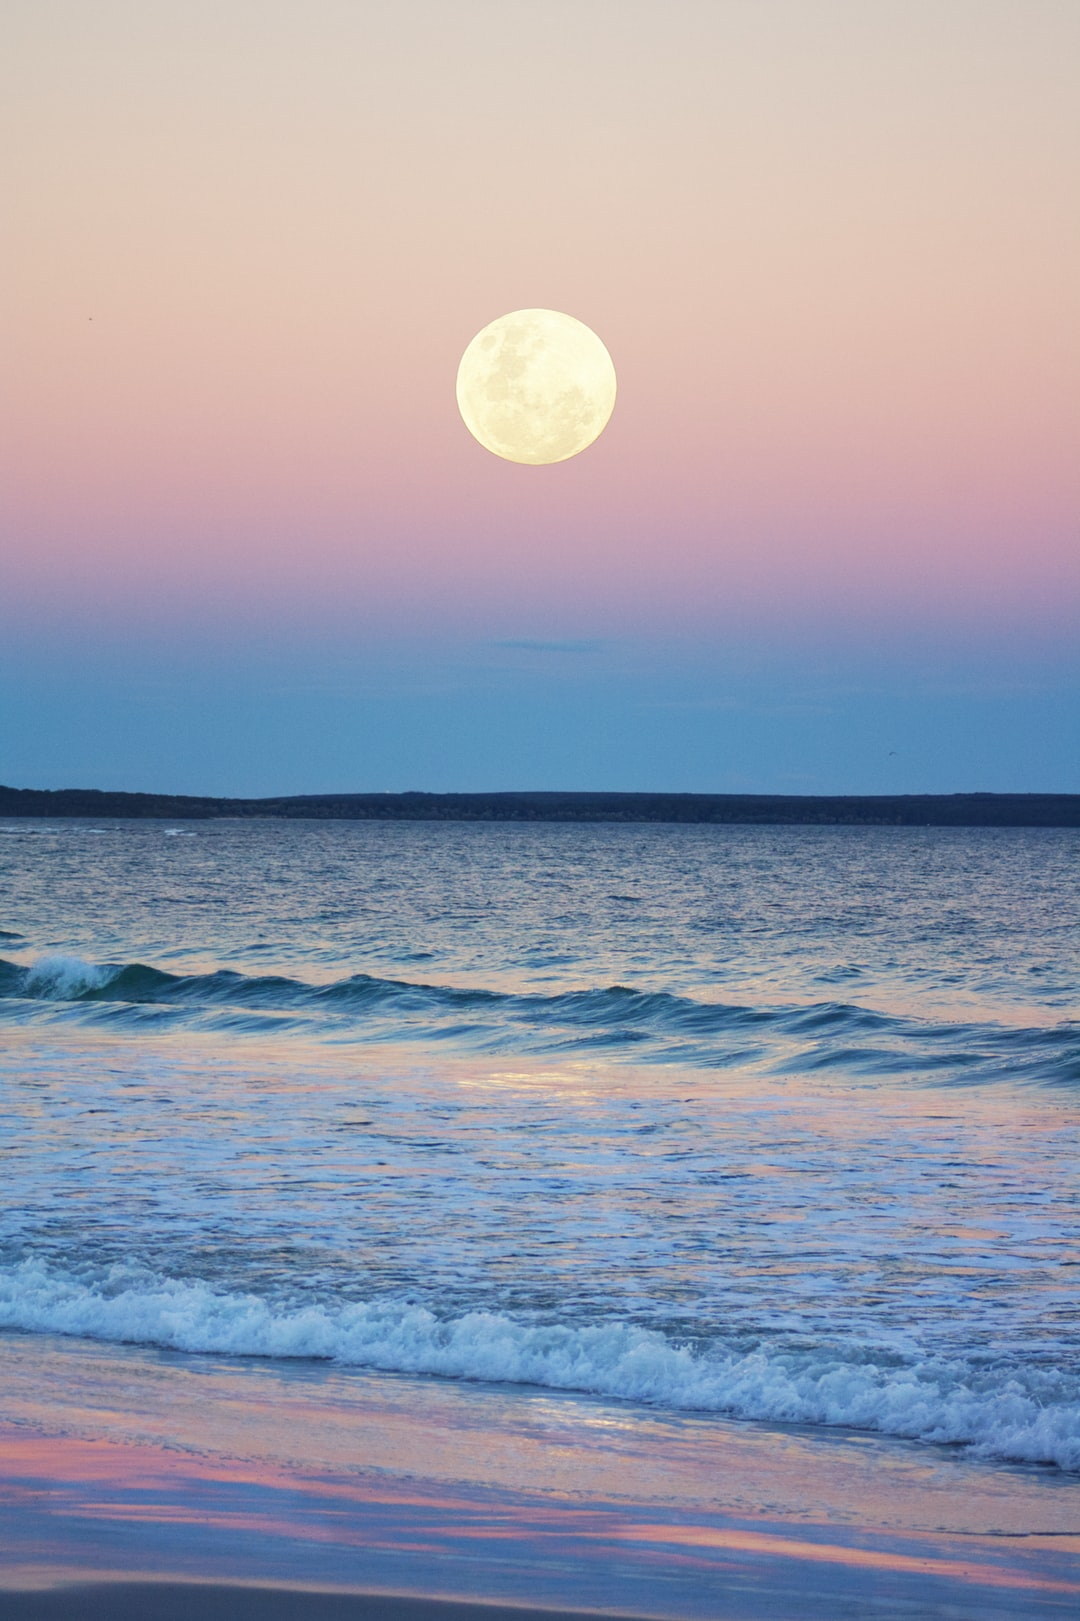 The nearly full moon rising over Jervis Bay, Australia, in blue hour as the last pink leaves the sky.  The famous white sand beaches and crystal clear water catch the light beautifully as it fades.  In this image I have increased saturation, contrast and the the moon to better capture the feeling of being there.